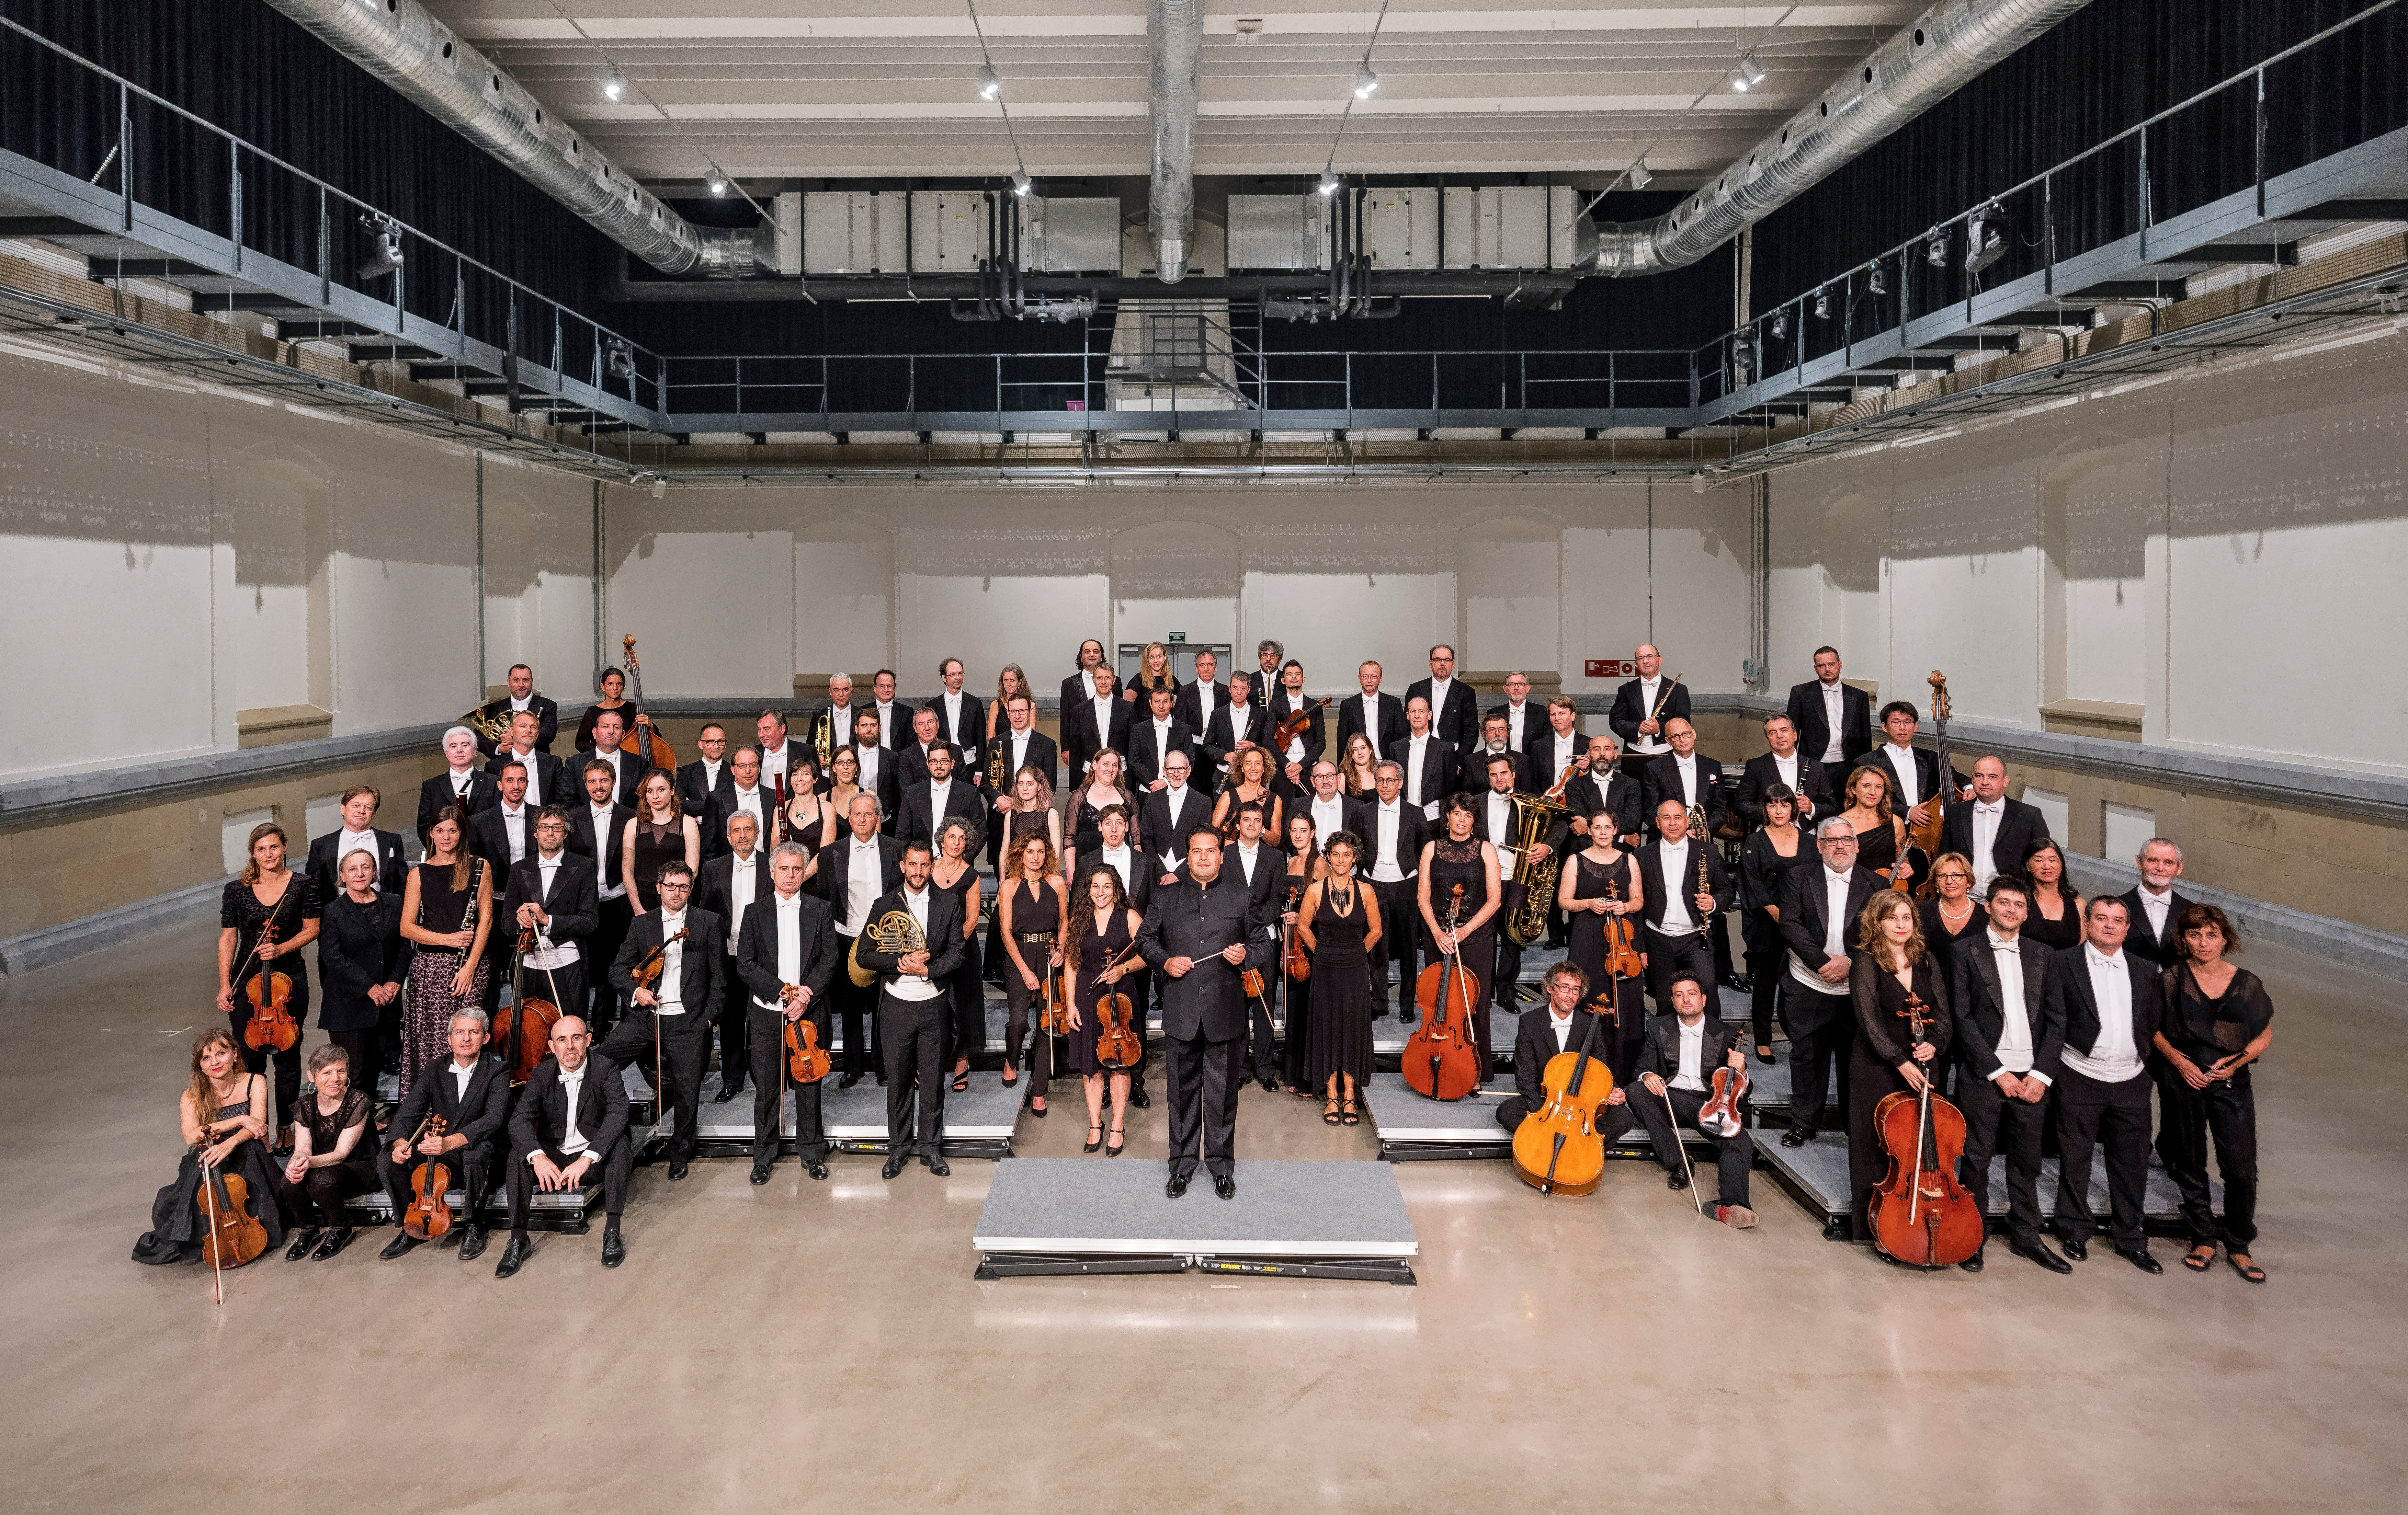 The Basque National Orchestra is one of the leading symphony orchestras in Spain. (Courtesy of CRR Concert Hall)